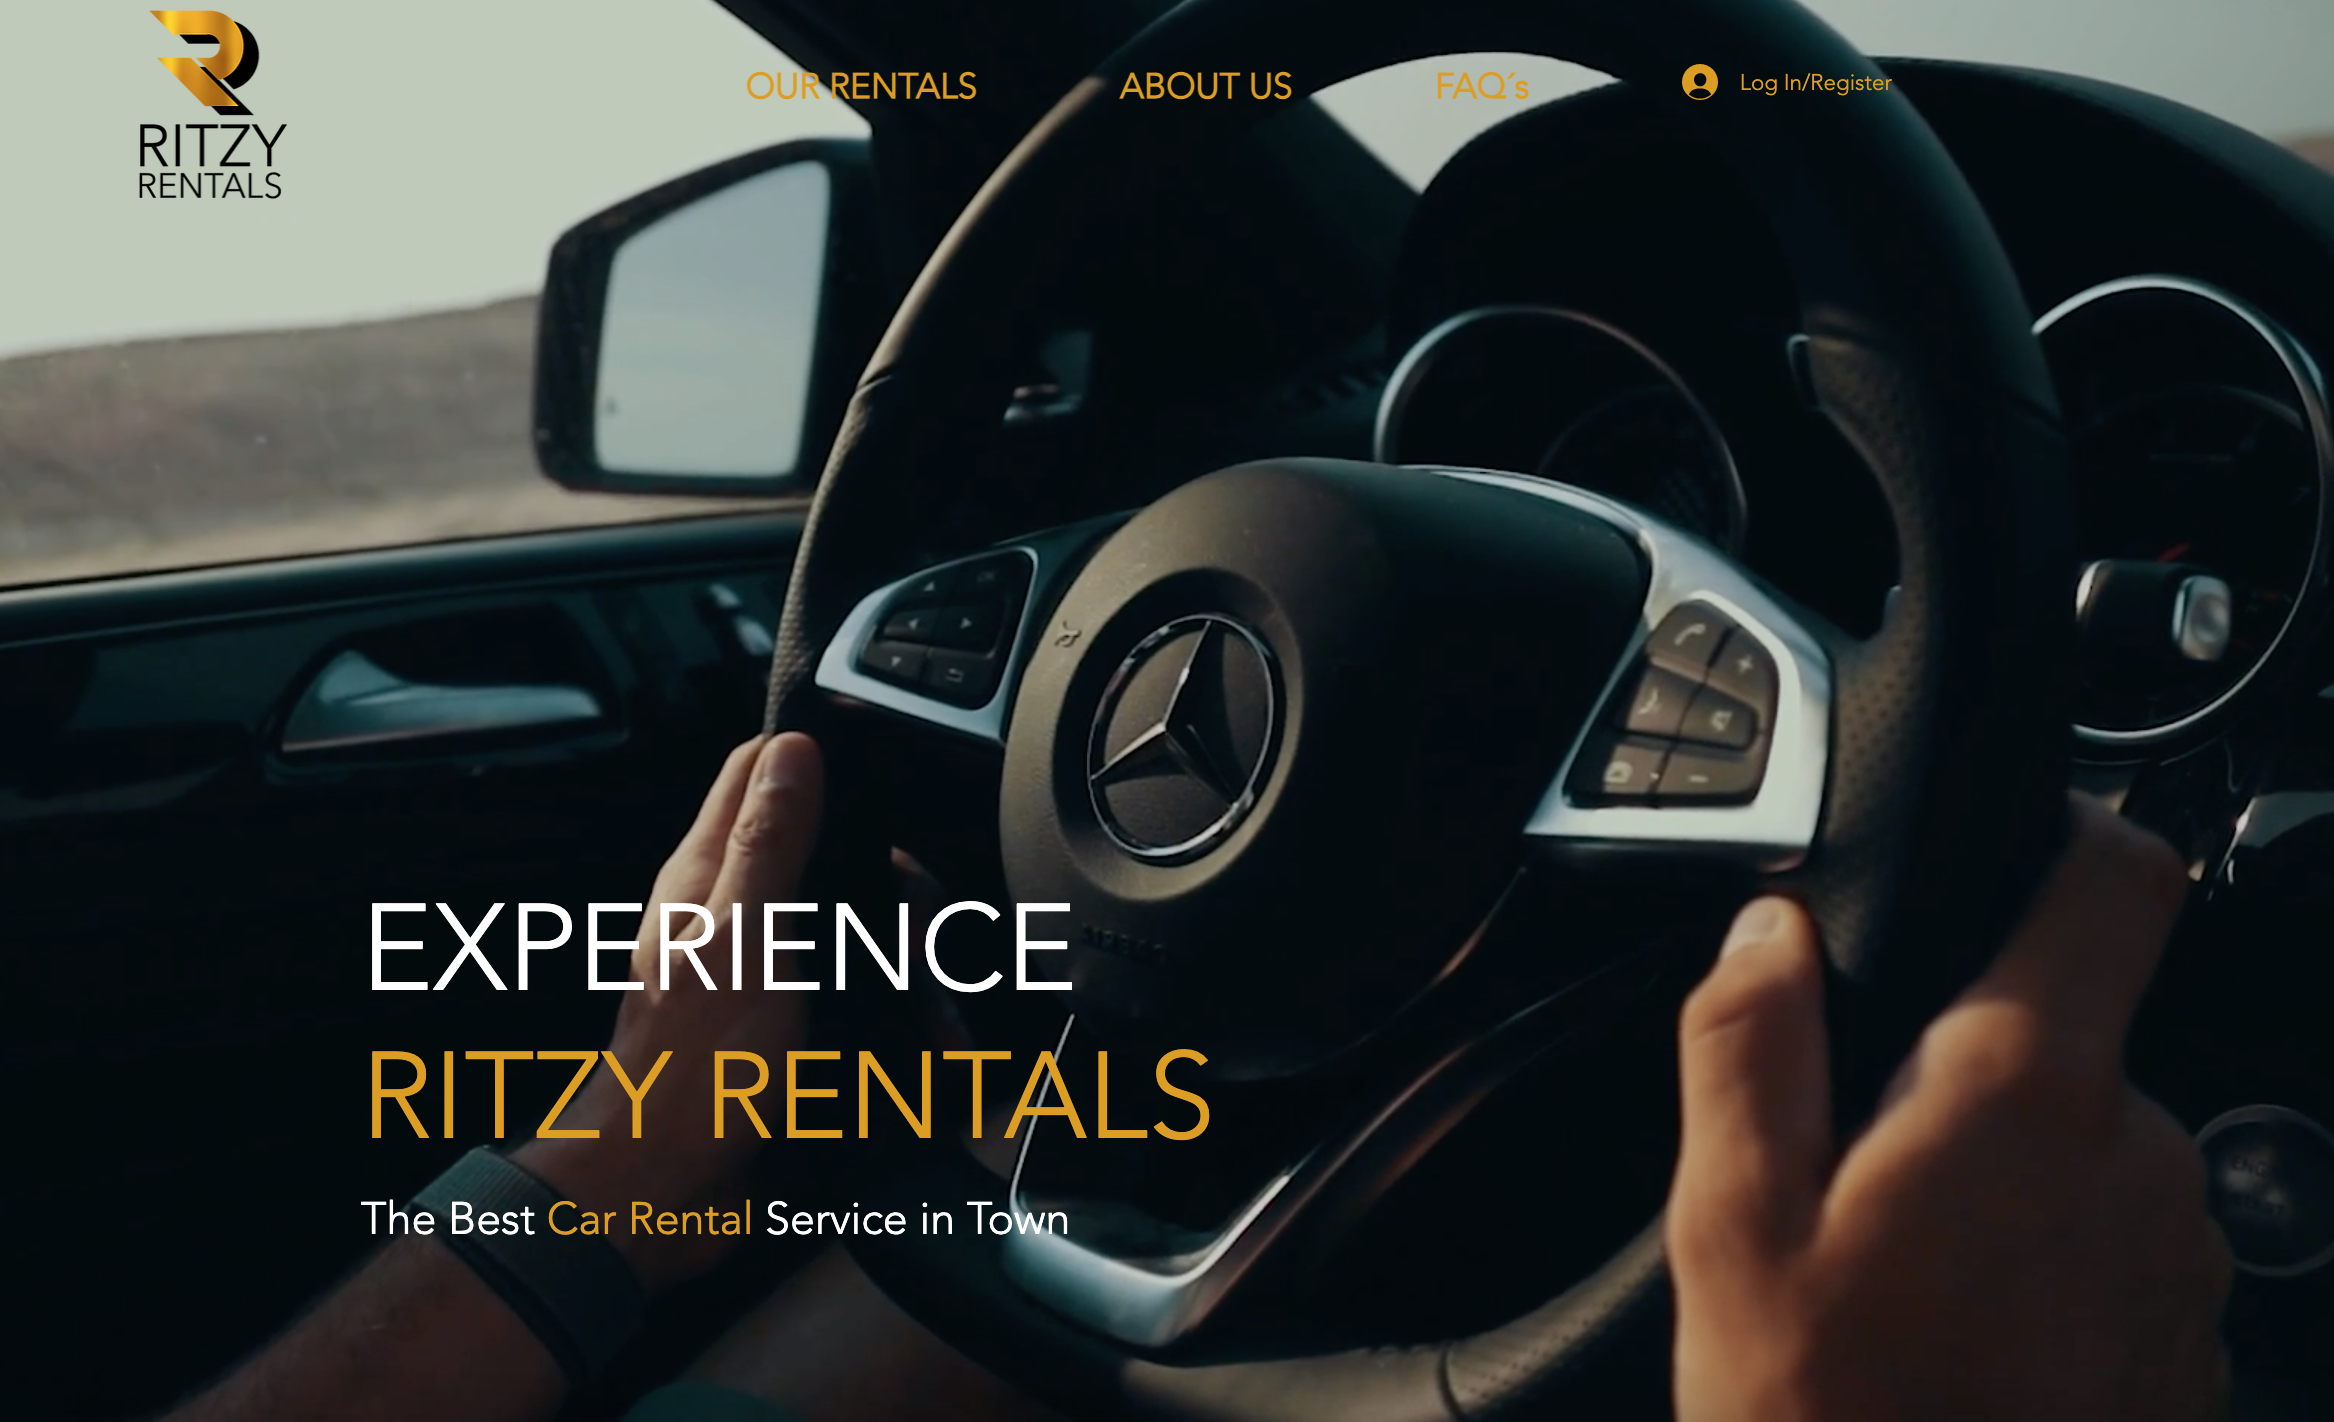 Ritzy Rentals - Rental Car